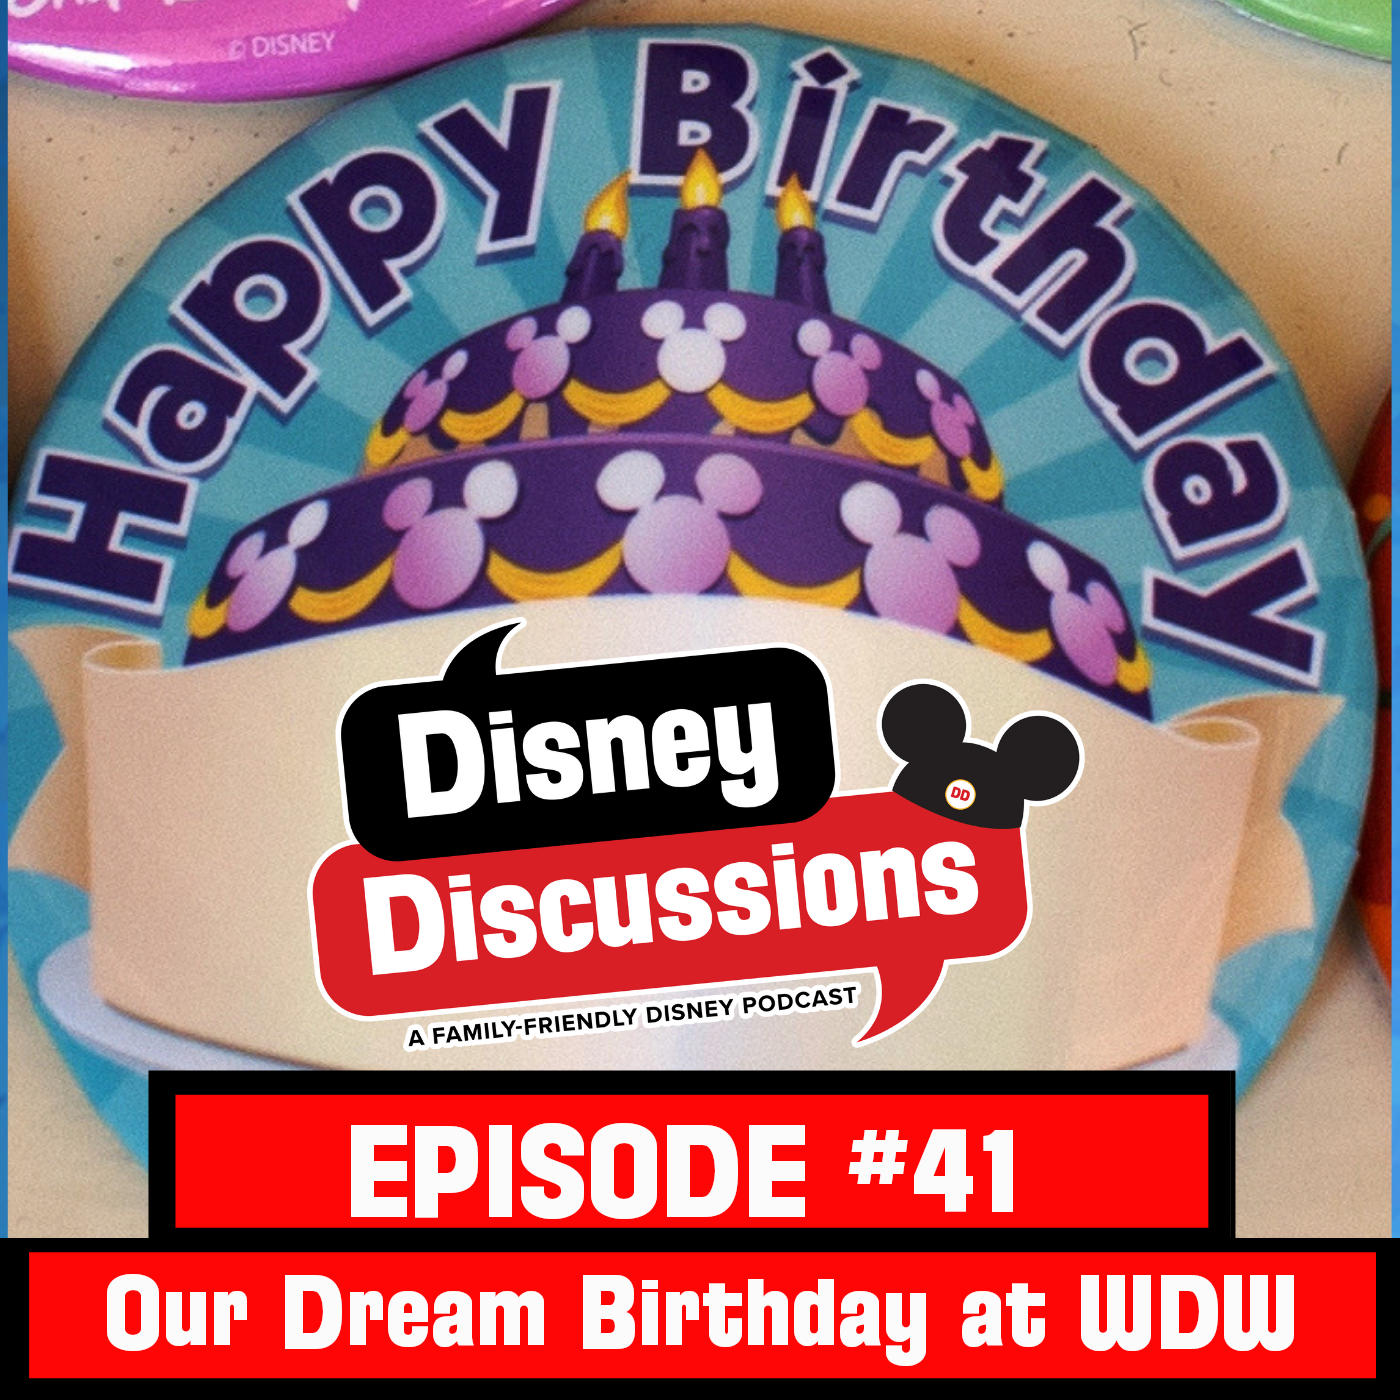 Our Dream Birthday Day at Walt Disney World, Captain Marvel Review, and a Disney Quiz - Episode 41